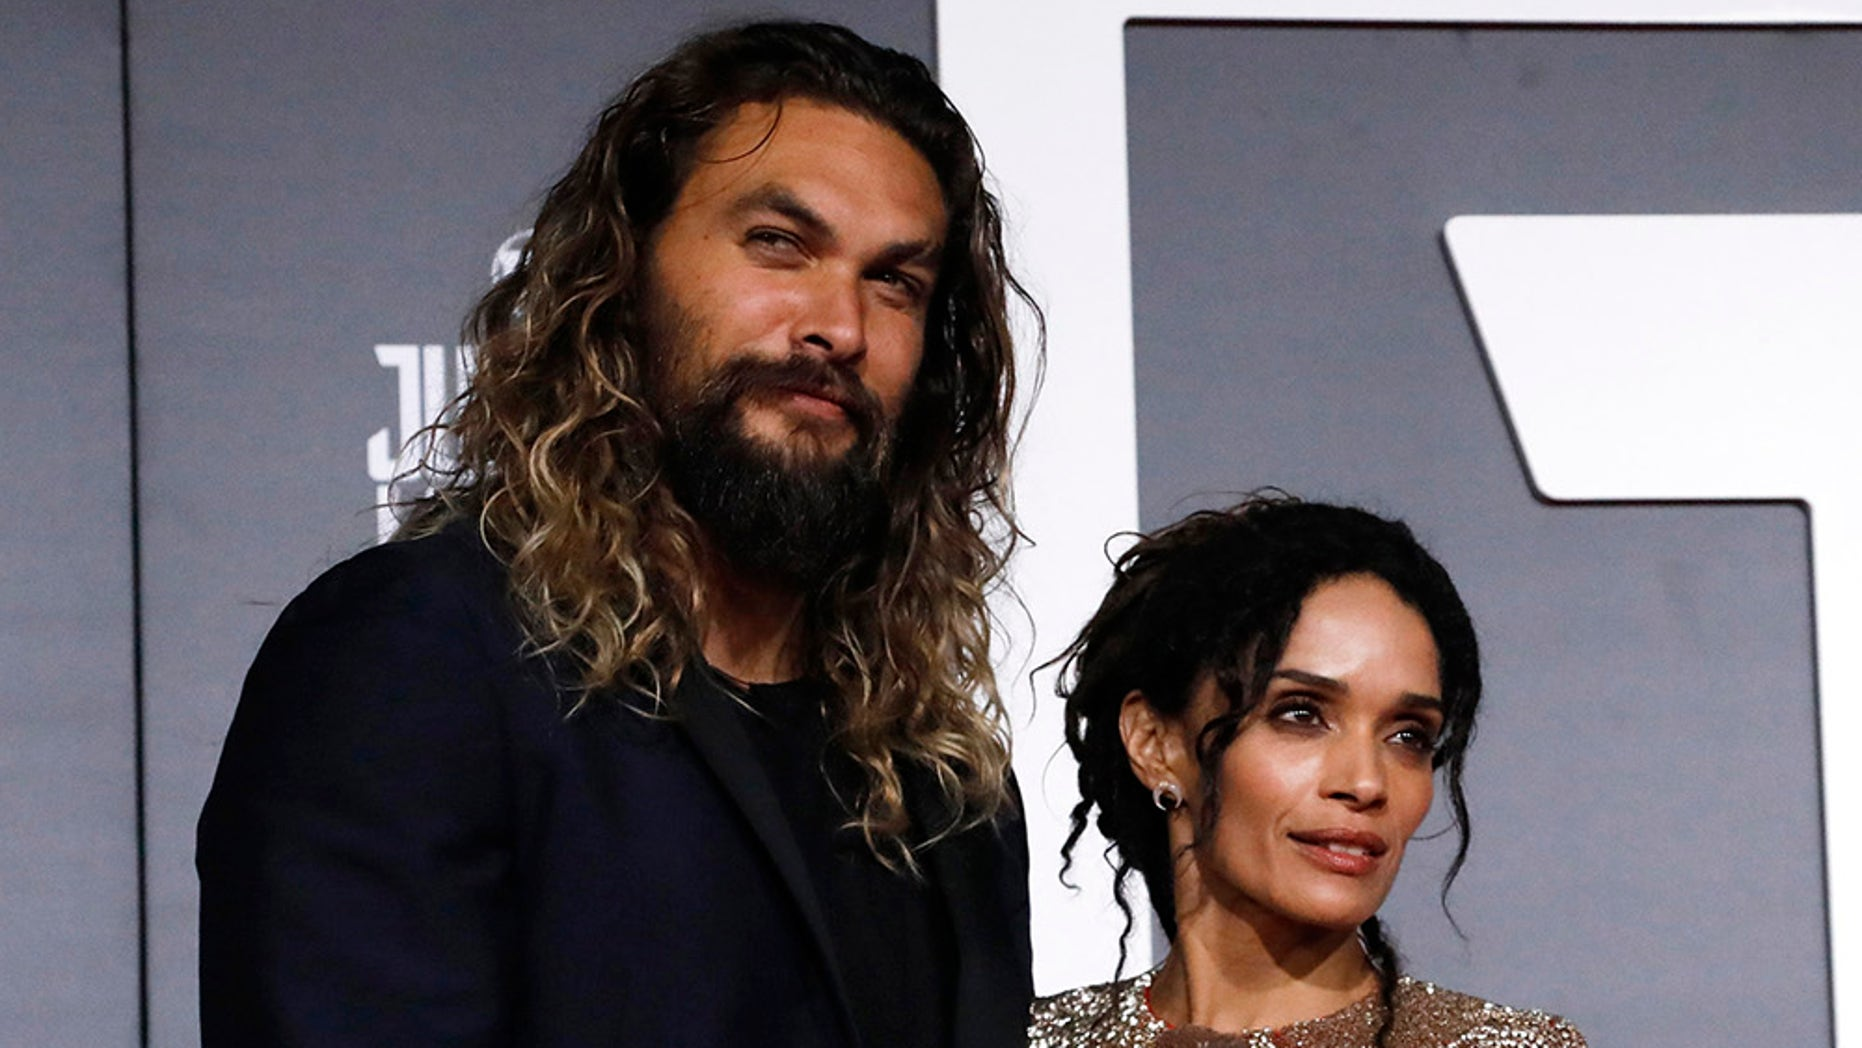 Jason Momoa leads haka at Aquaman premiere in Los Angeles